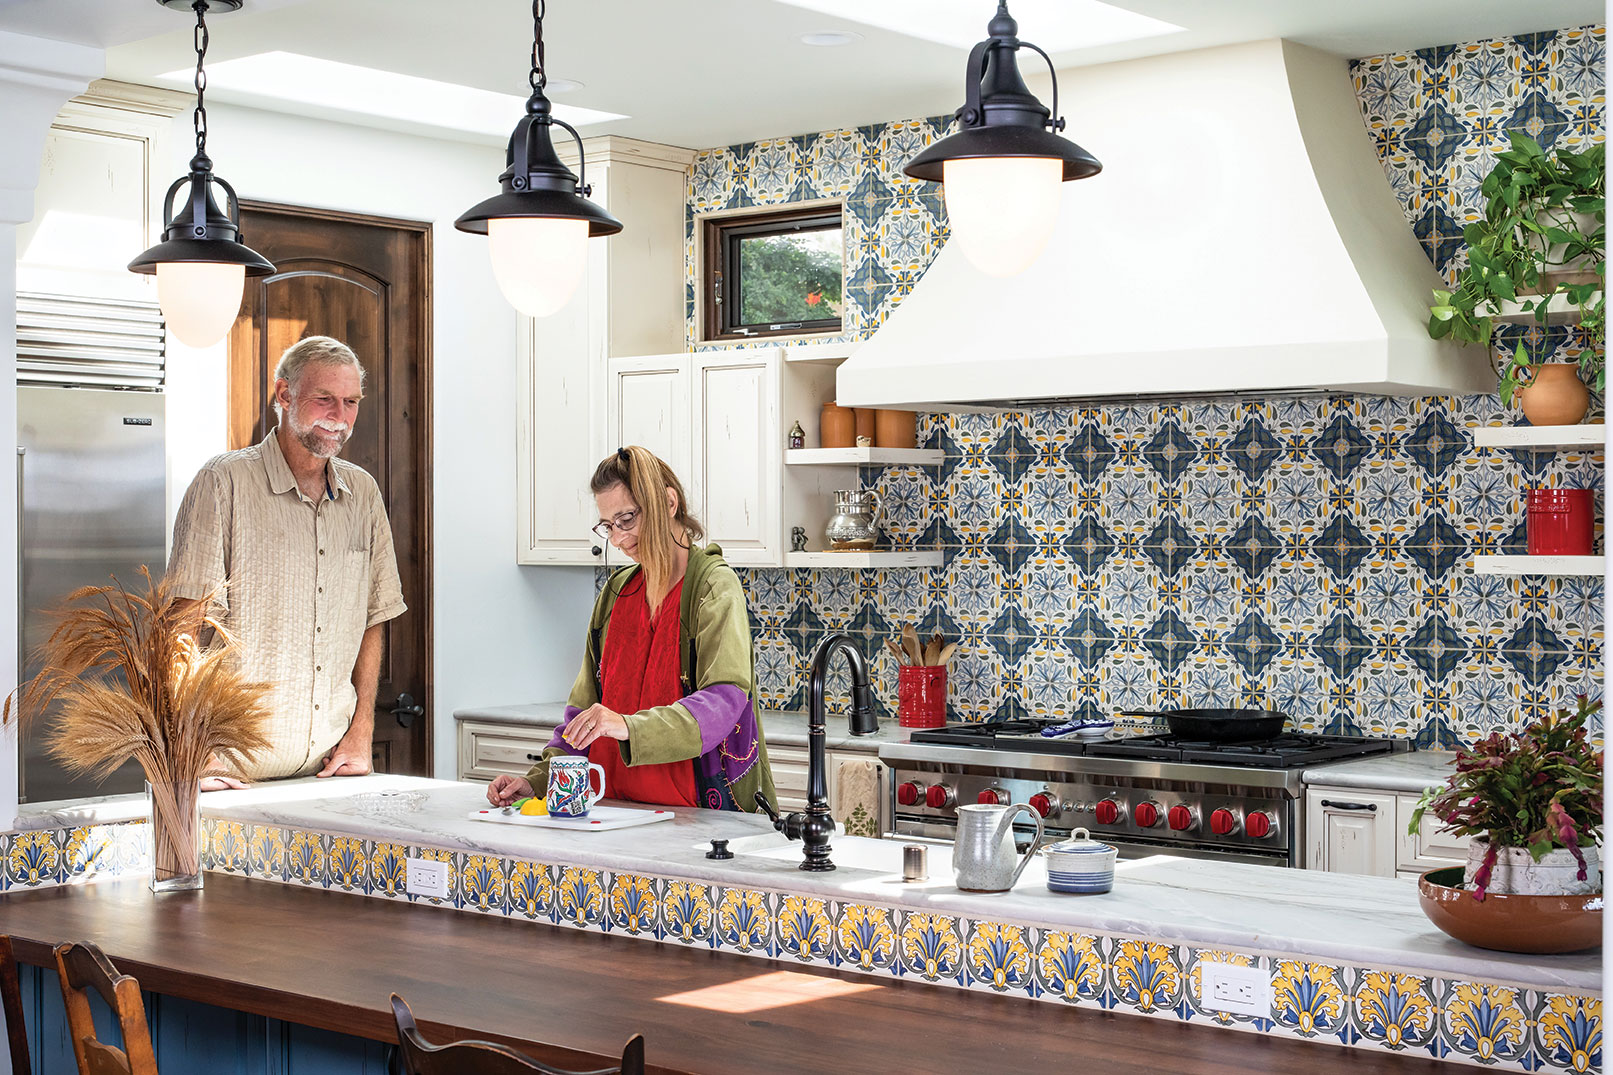 a couple prepares tea in an eclectic kitchen with colorful tile in an ocean beach san diego home